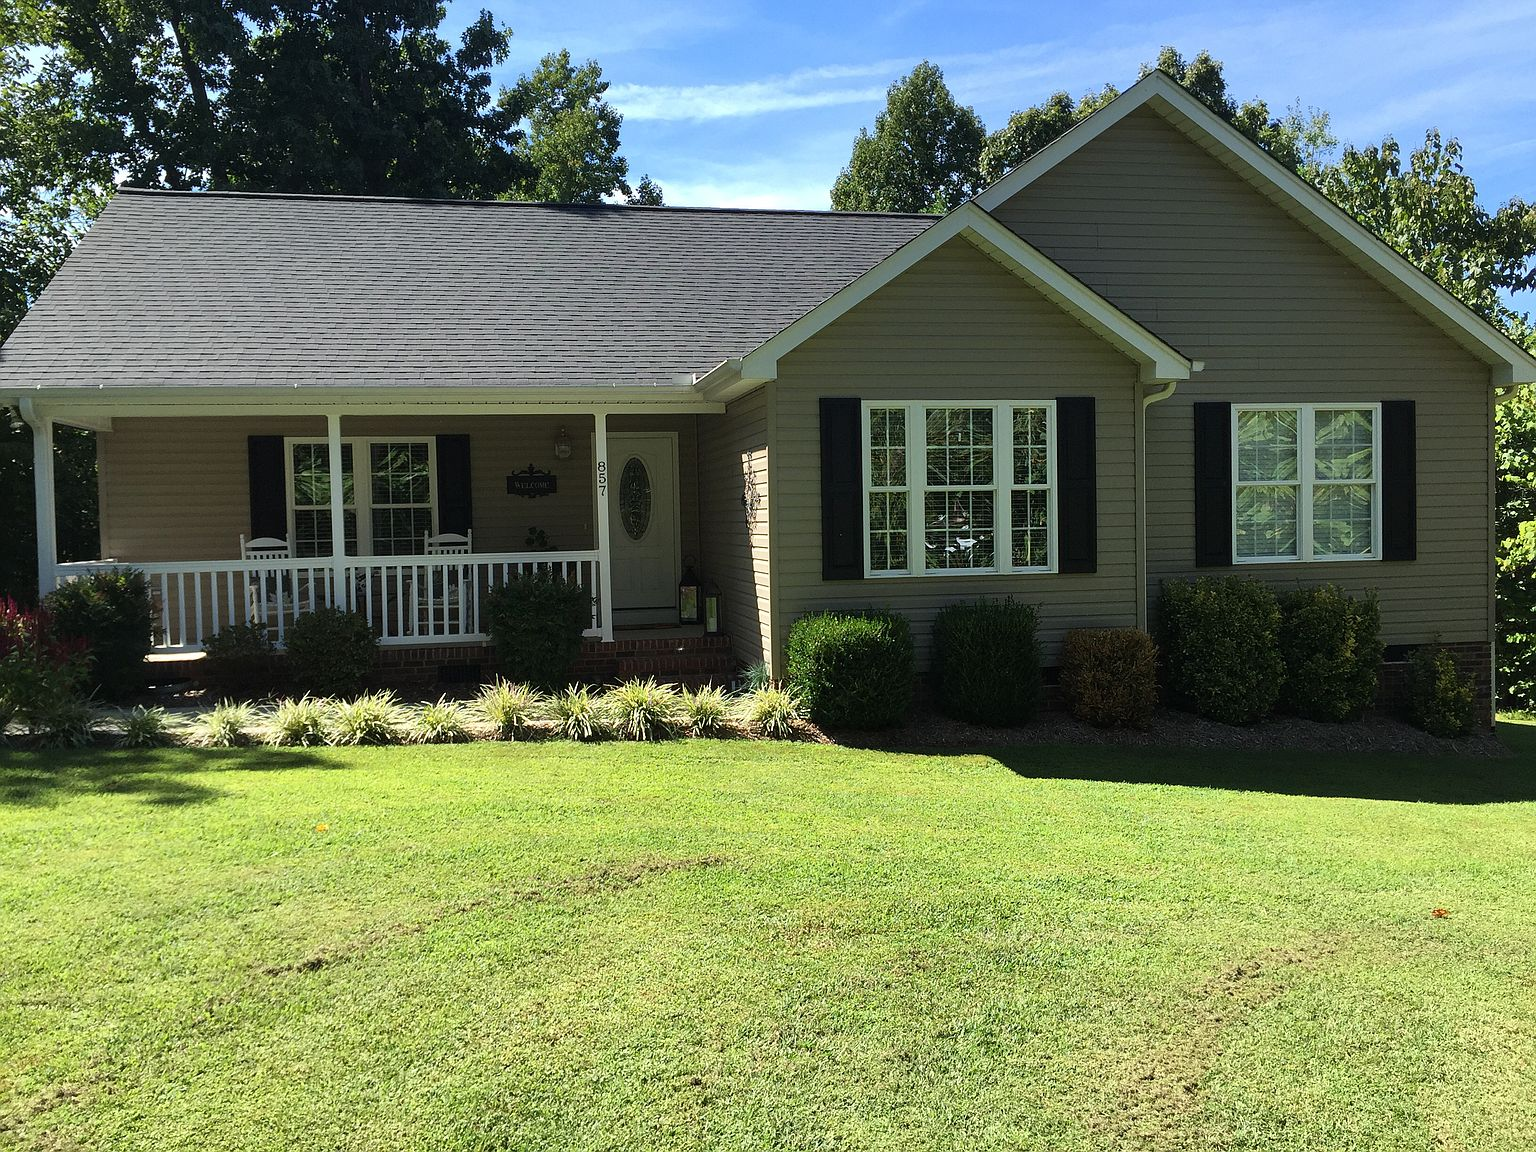 857 Gold Hill Rd Asheboro Nc 27203 Zillow